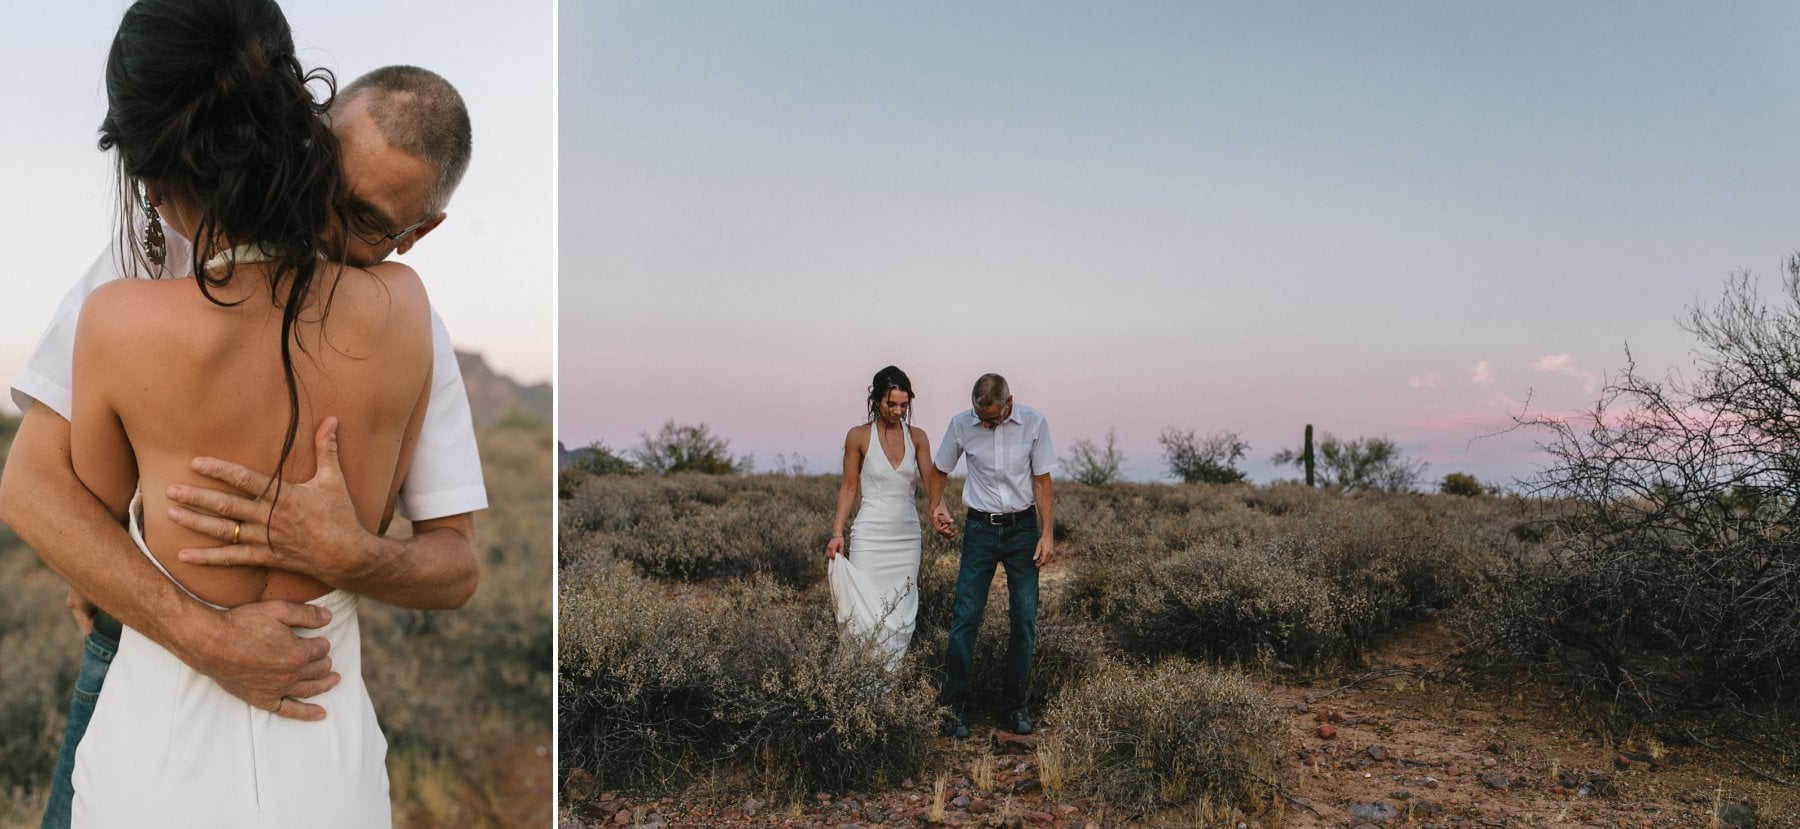 sunset desert elopement in Arizona Superstitions